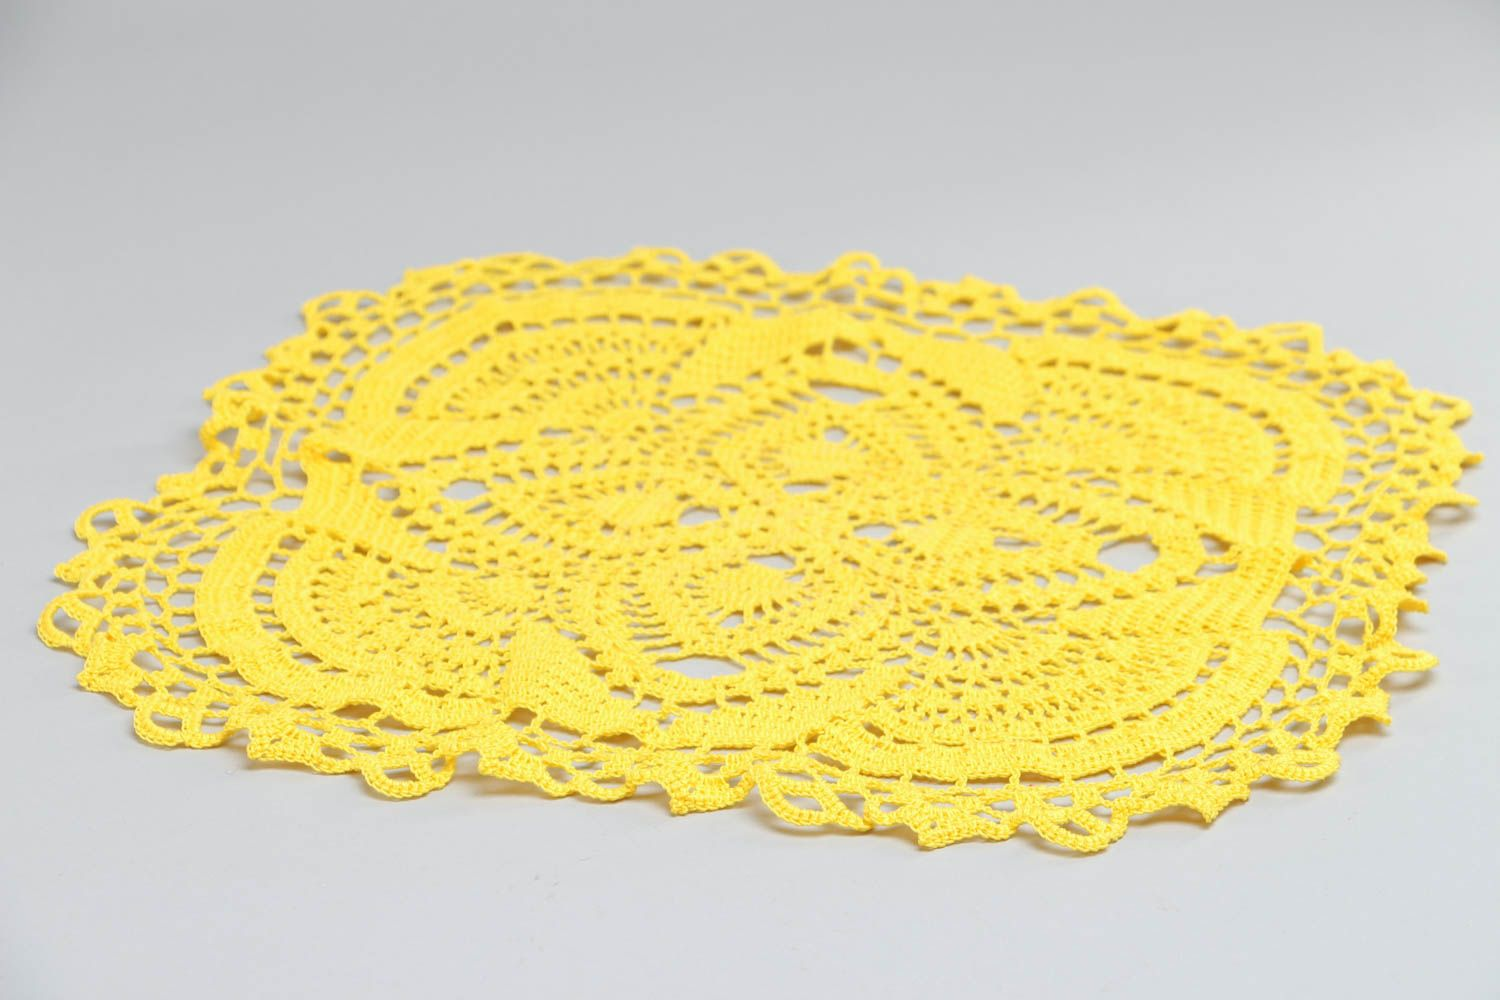 textiles and carpets Beautiful light lace crochet cotton table napkin of yellow color handmade - MADEheart.com